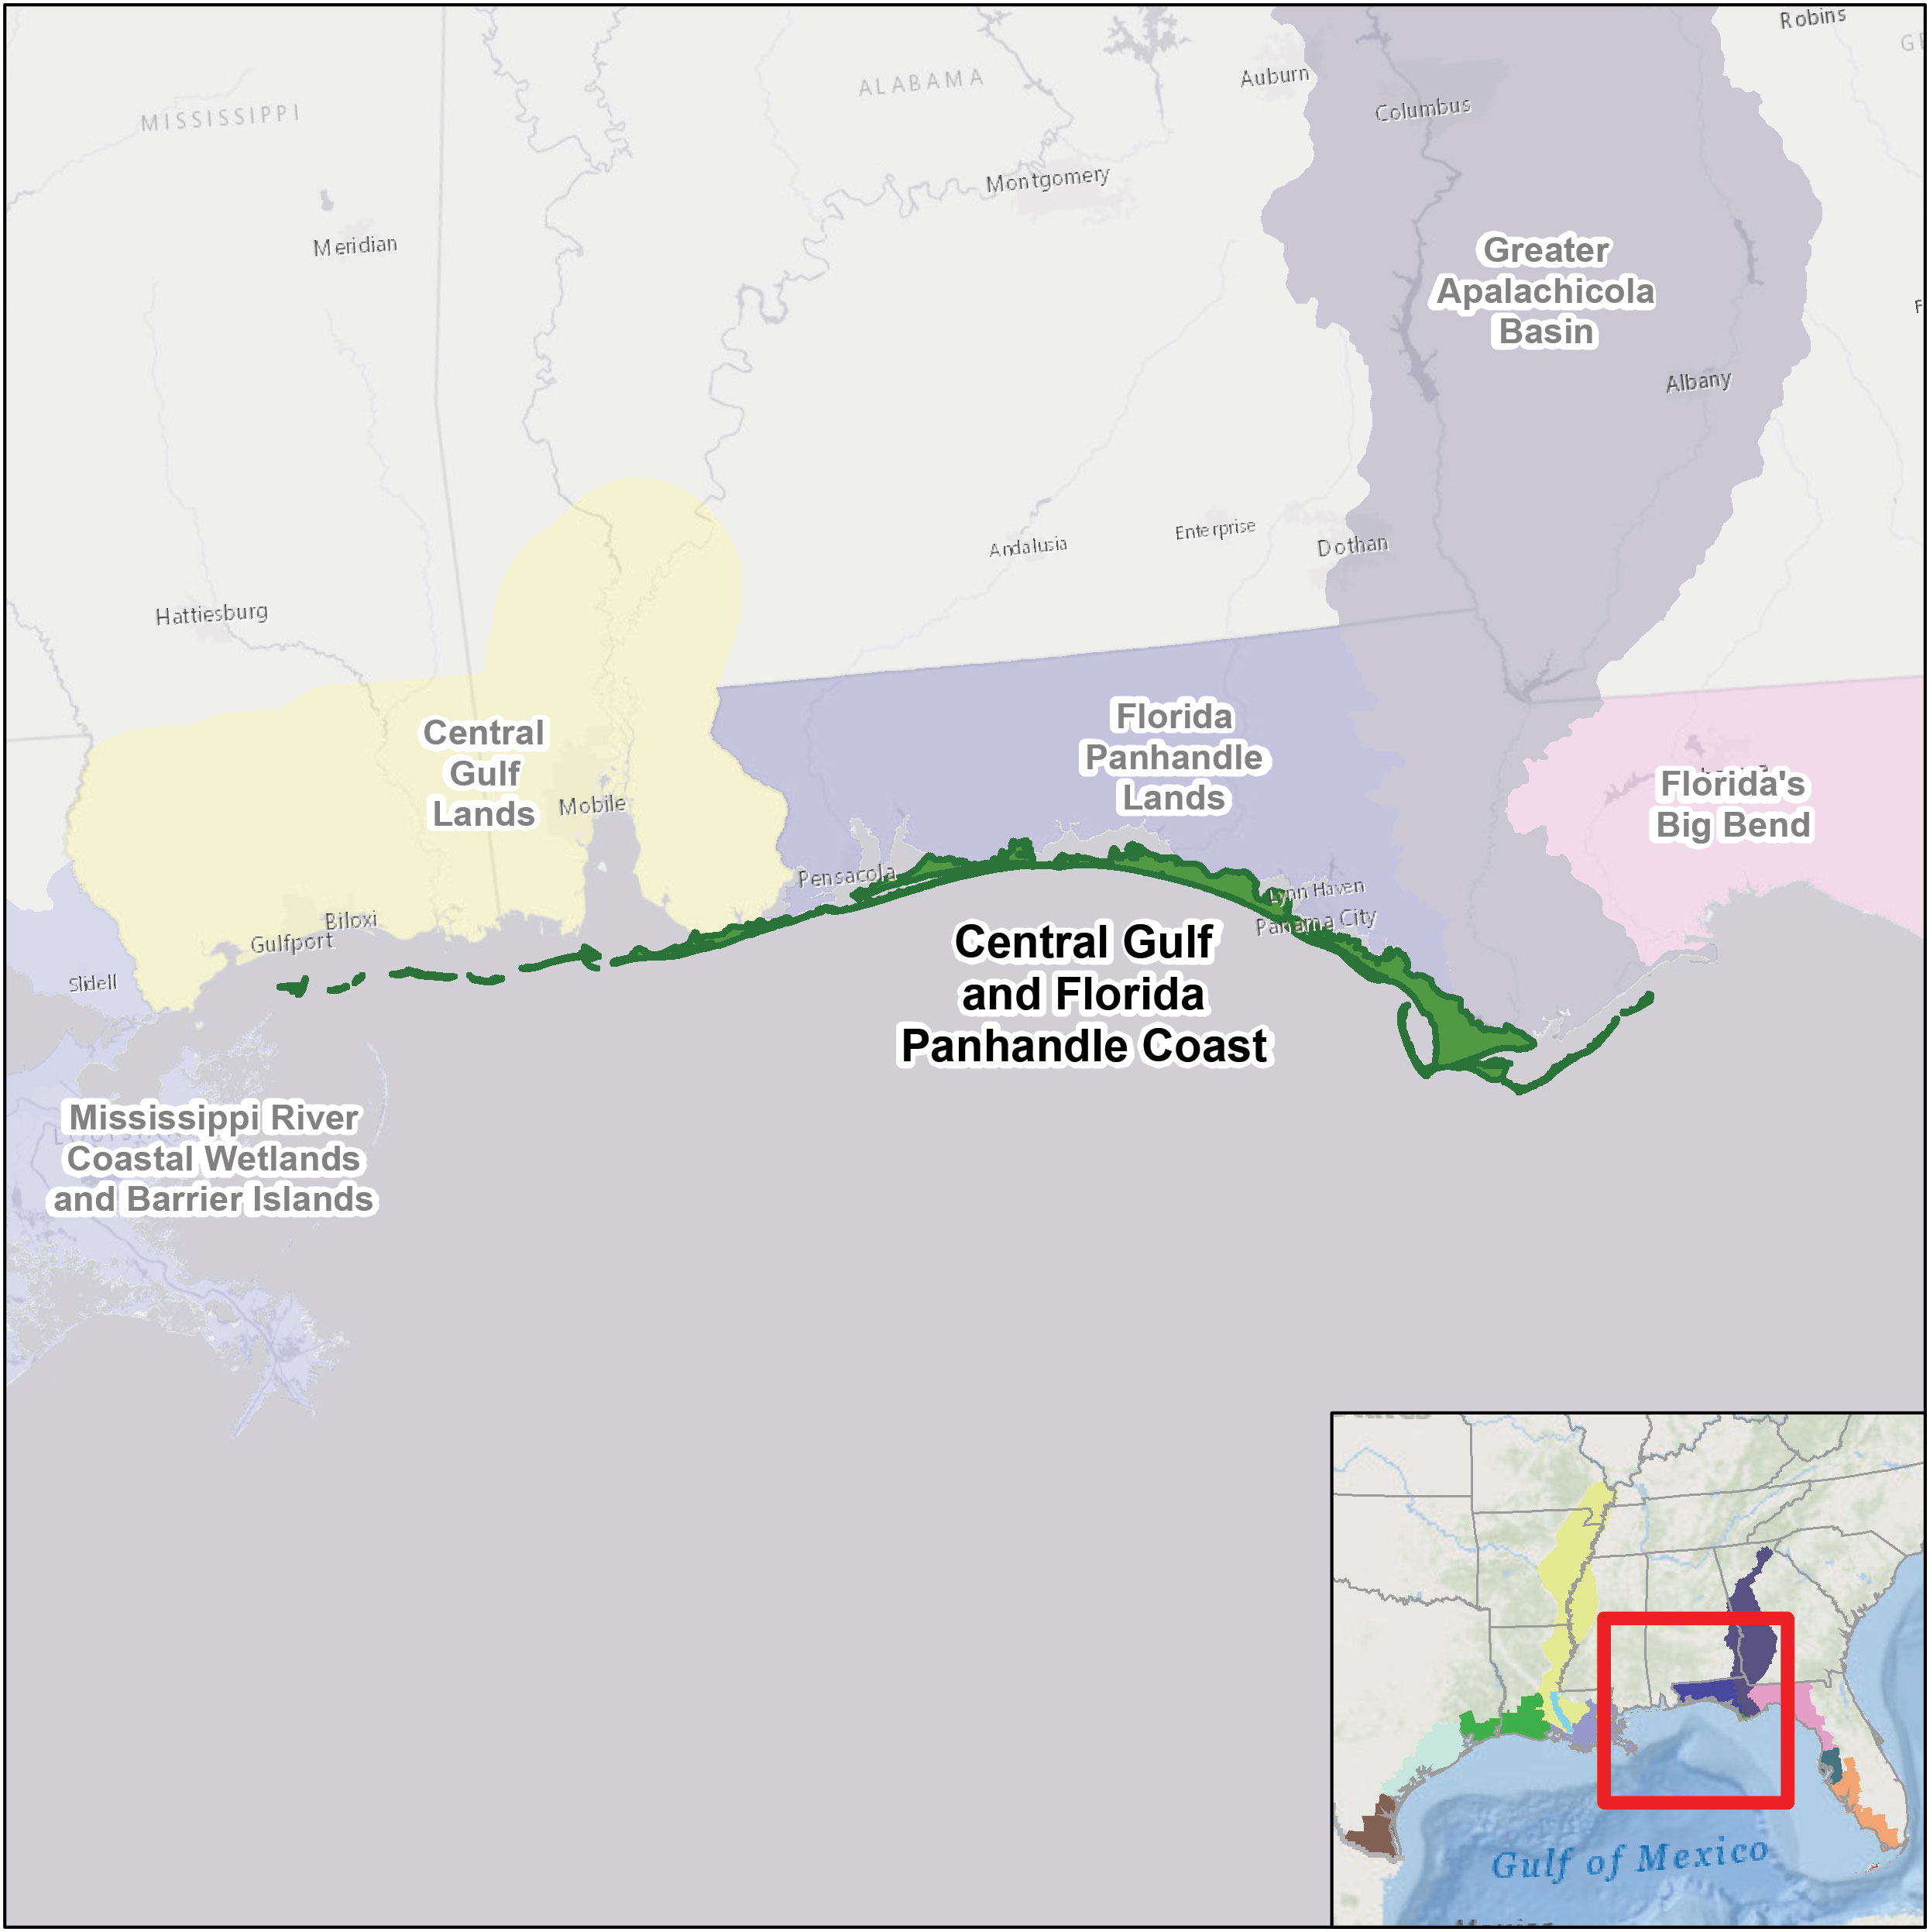 Central Gulf And Florida Panhandle Coast | U.s. Fish & Wildlife Service - Road Map Of Florida Panhandle